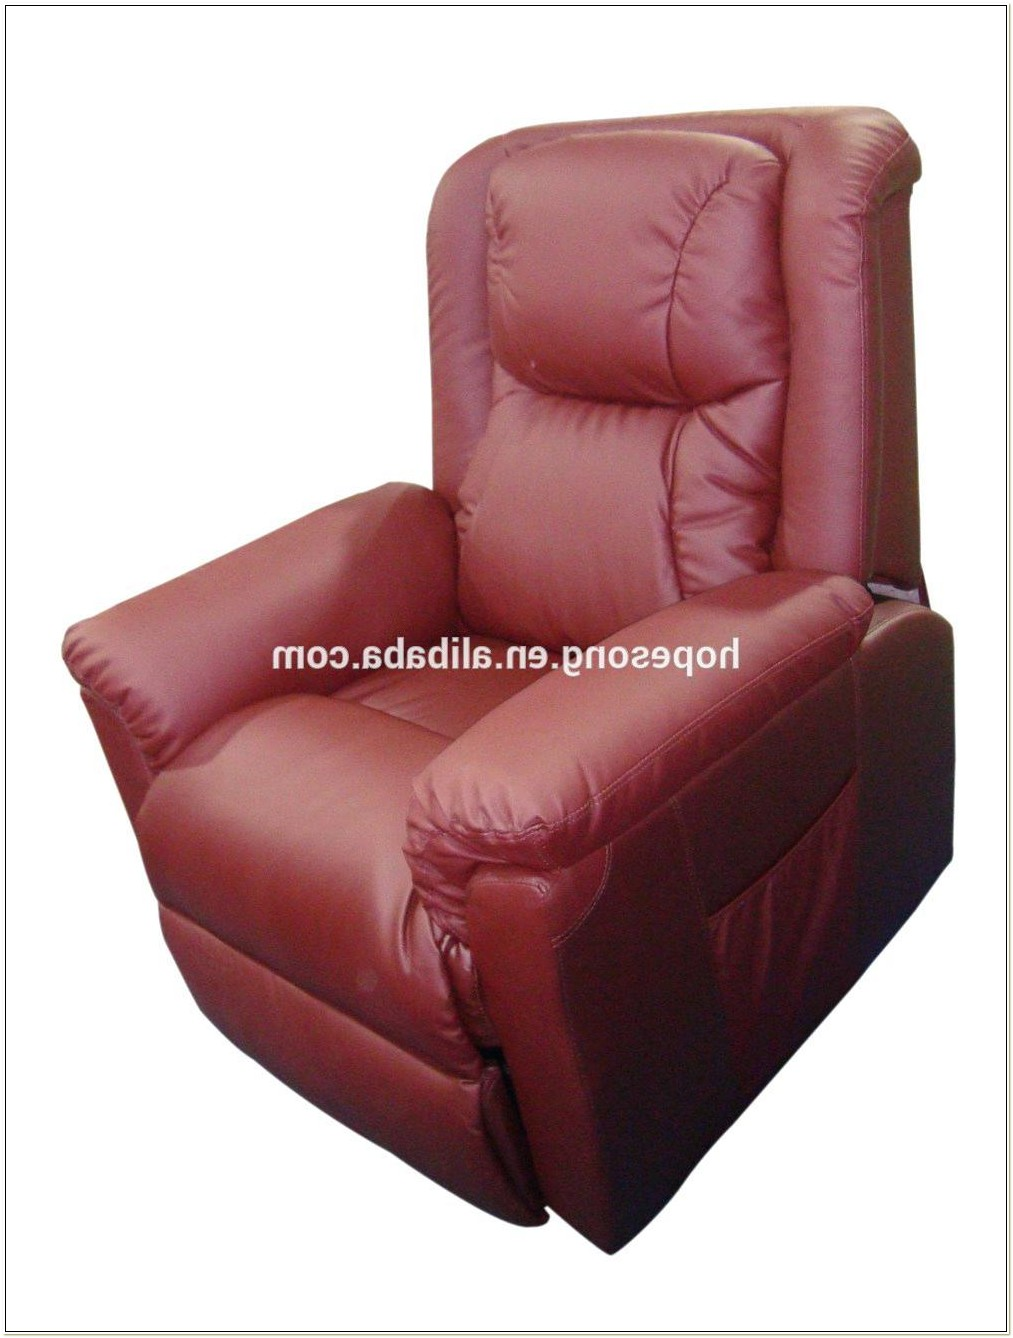 Rise And Recline Chair Gumtree